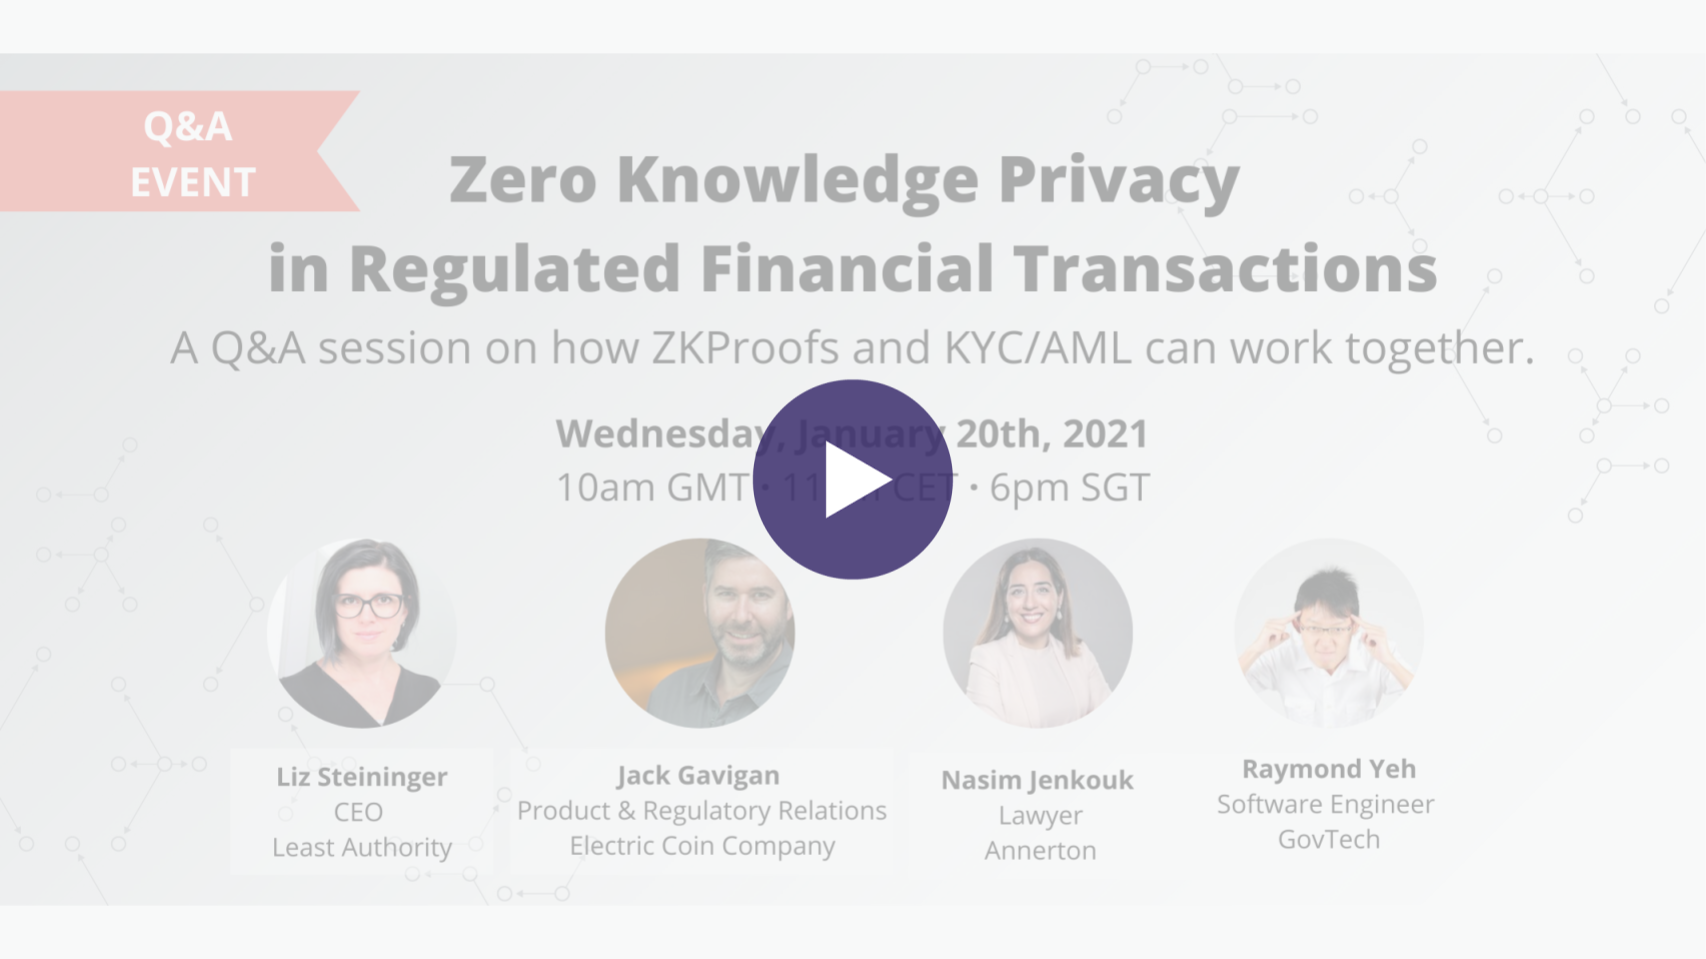 Event announcement with photos of Liz Steininger, CEO and Managing Director at Least Authority as the moderator, and panelists Jack Gavigan, Head of Product and Regulatory Relations at Electric Coin Company, Nasim Jenkouk, Lawyer at Annerton, Raymond Yeh, Software Engineer at Government Technology Agency